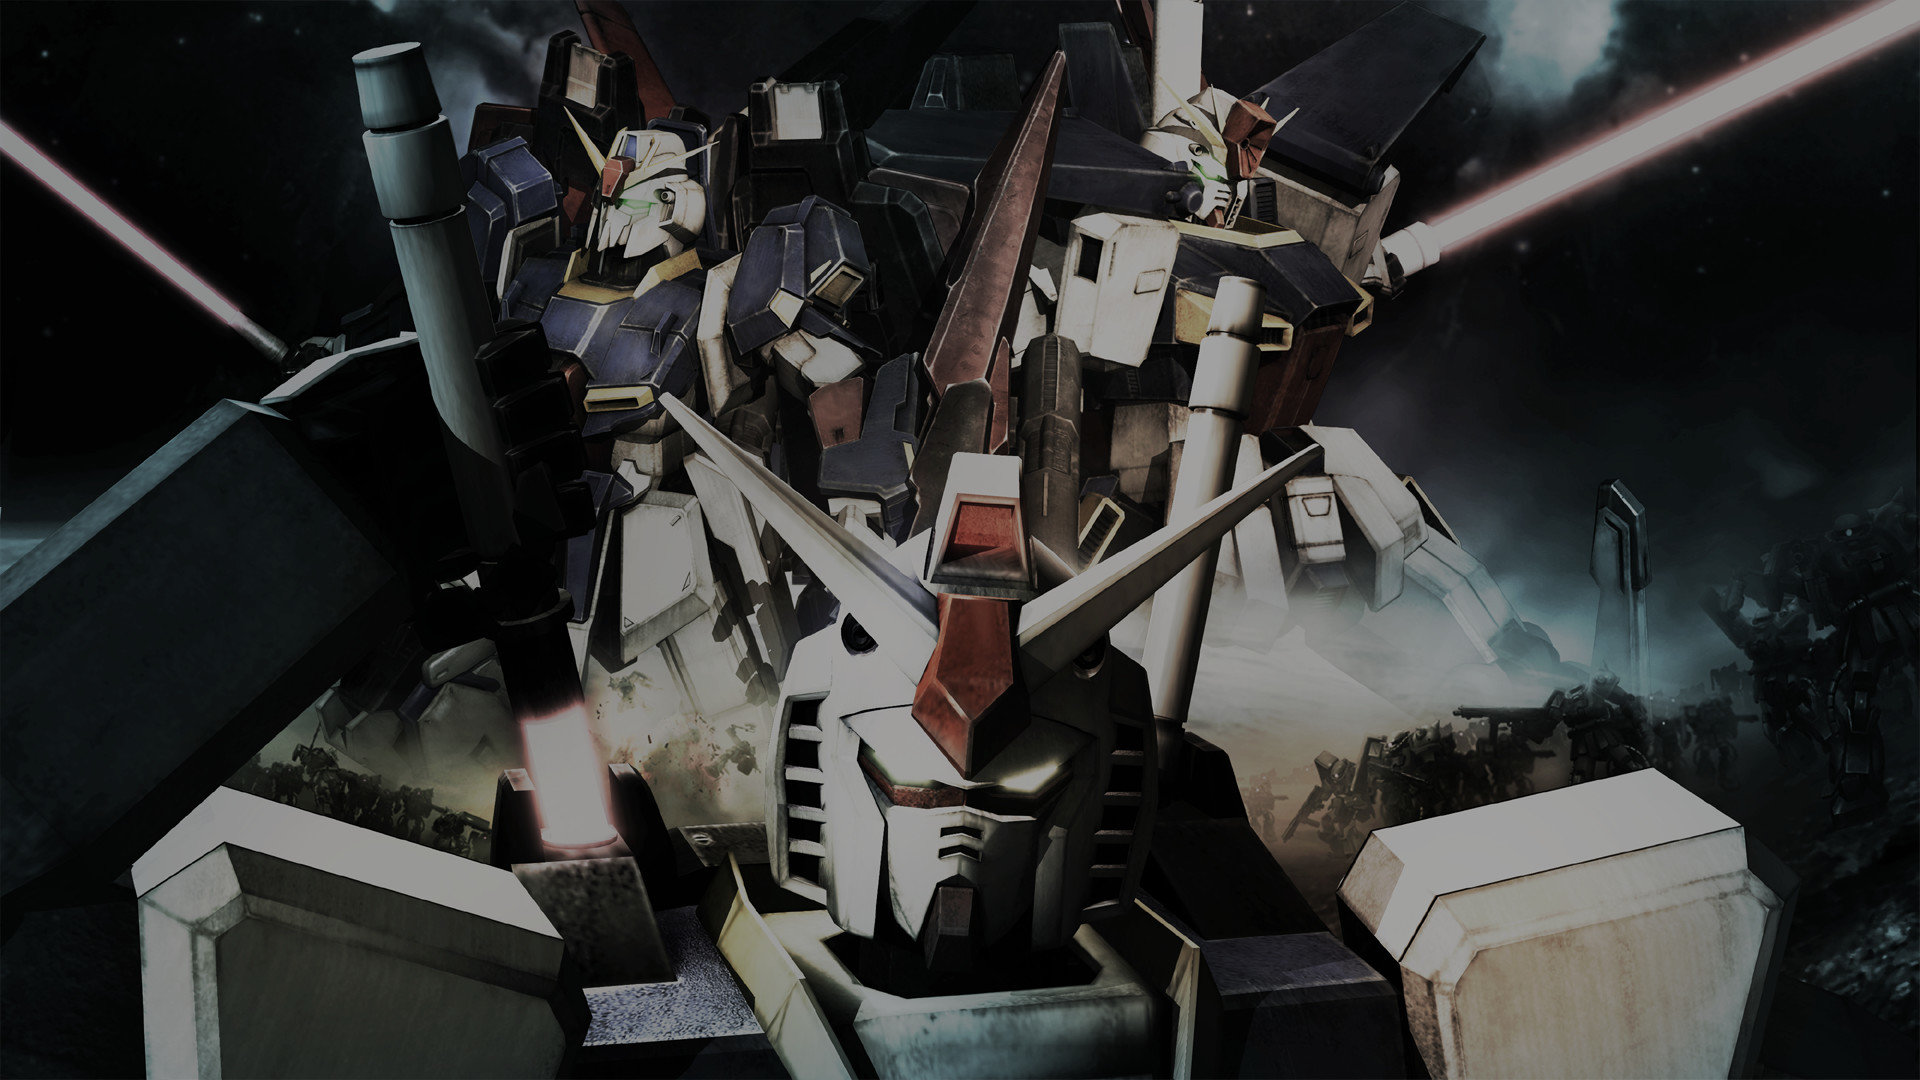 Awesome Gundam free wallpaper ID:115158 for hd 1920x1080 computer